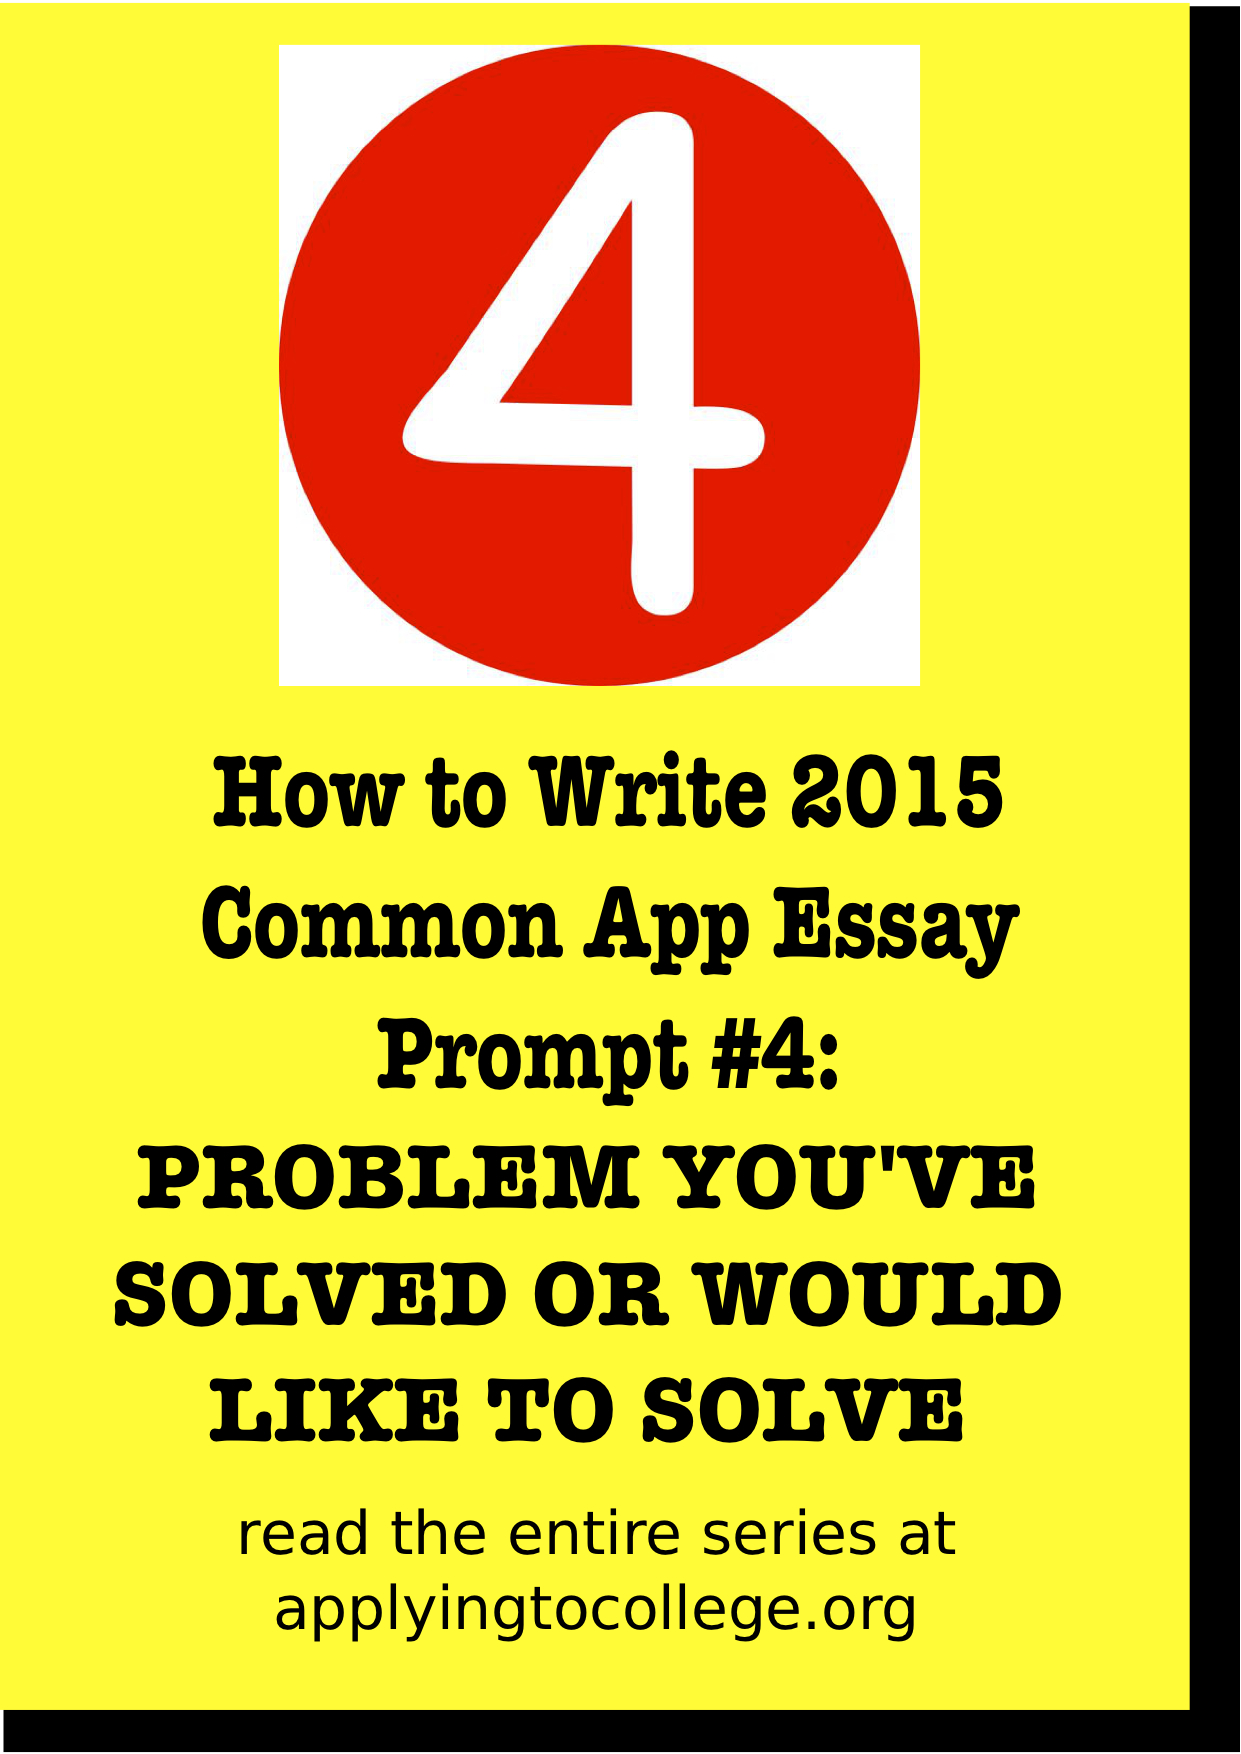 how to write 2015 common app essay 4 problem you ve solved or how to write 2015 common application essay problem you ve solved or would like to